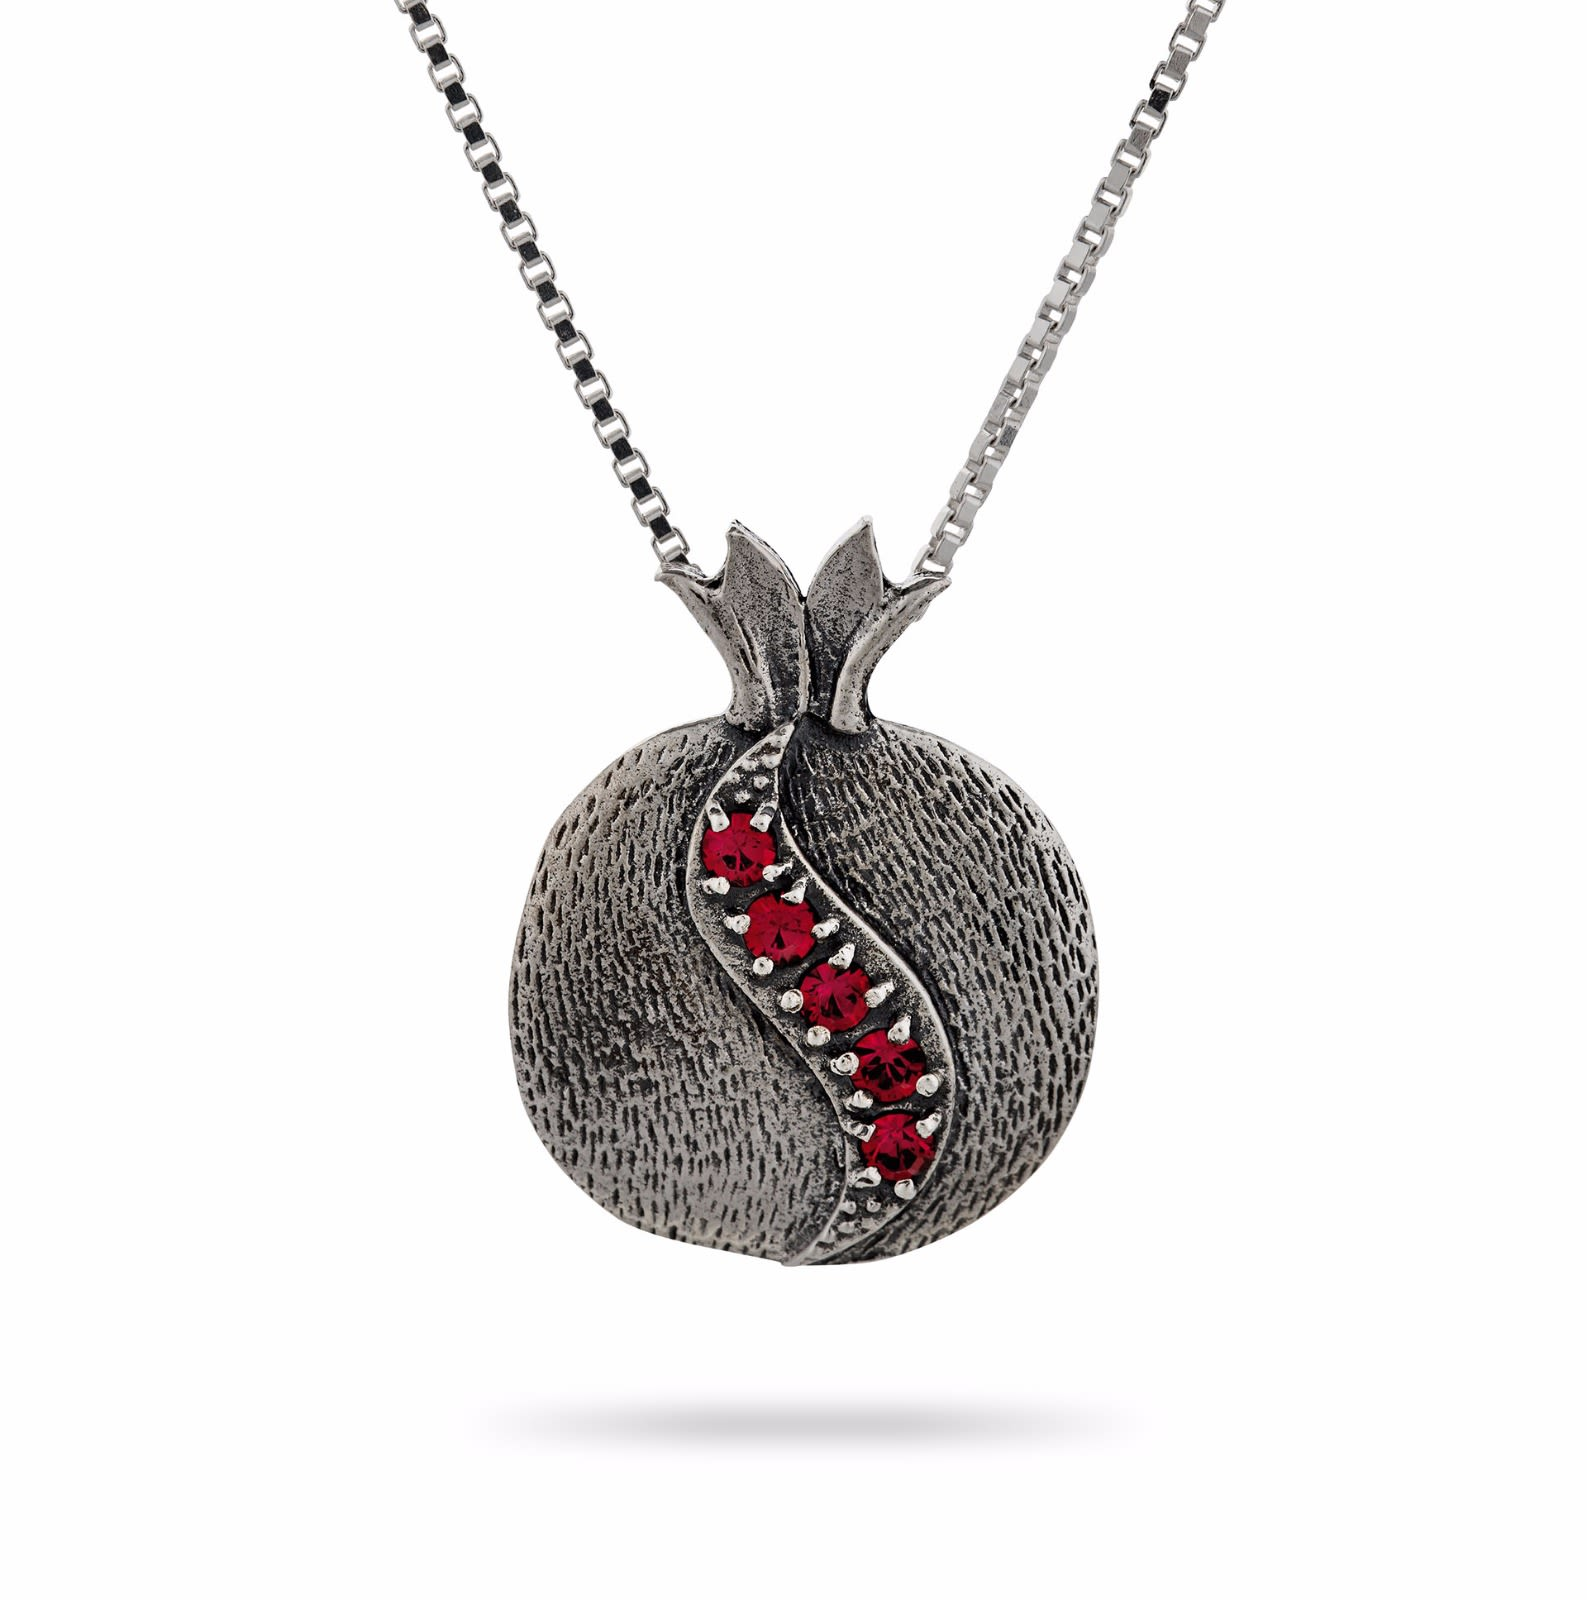 Red Stones Pomegranate on Silver Chain